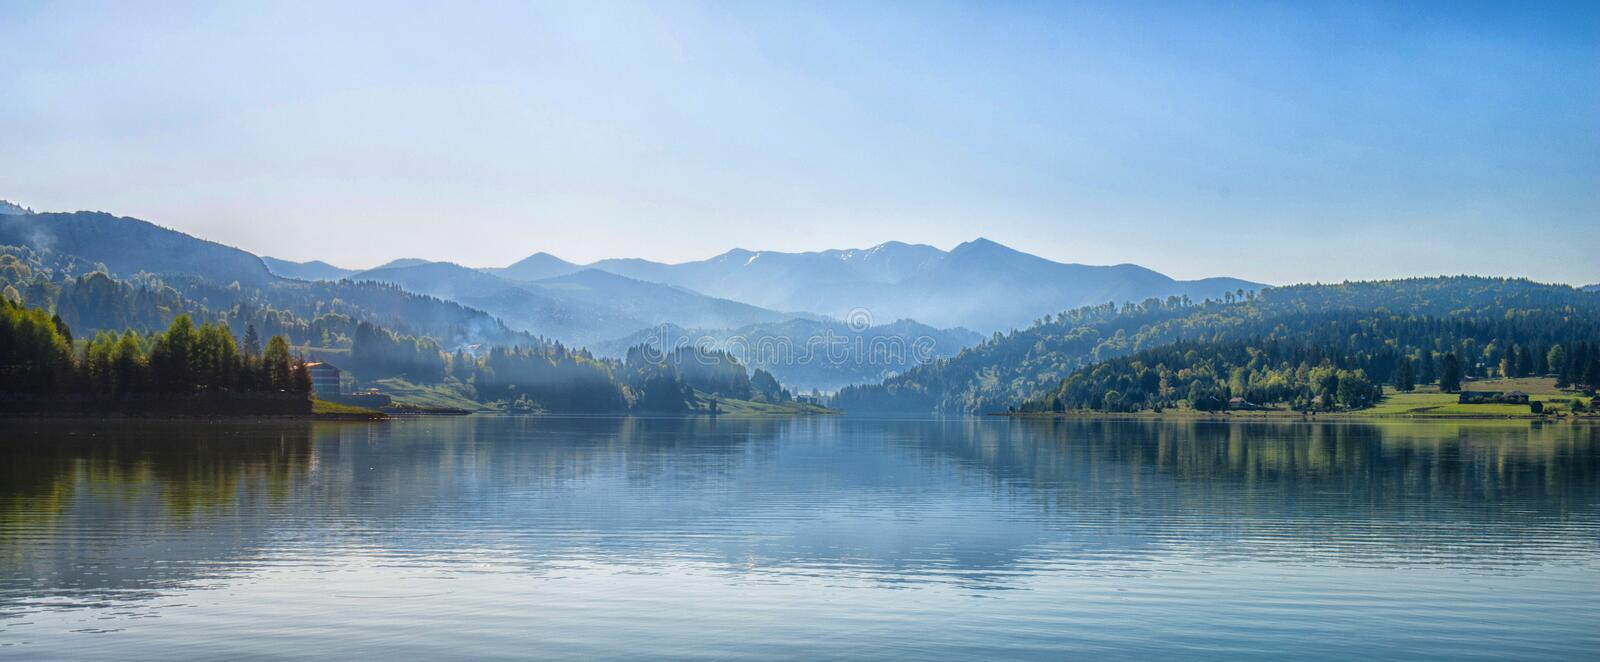 Body of Water Next to Mountain during Day Time stock photos